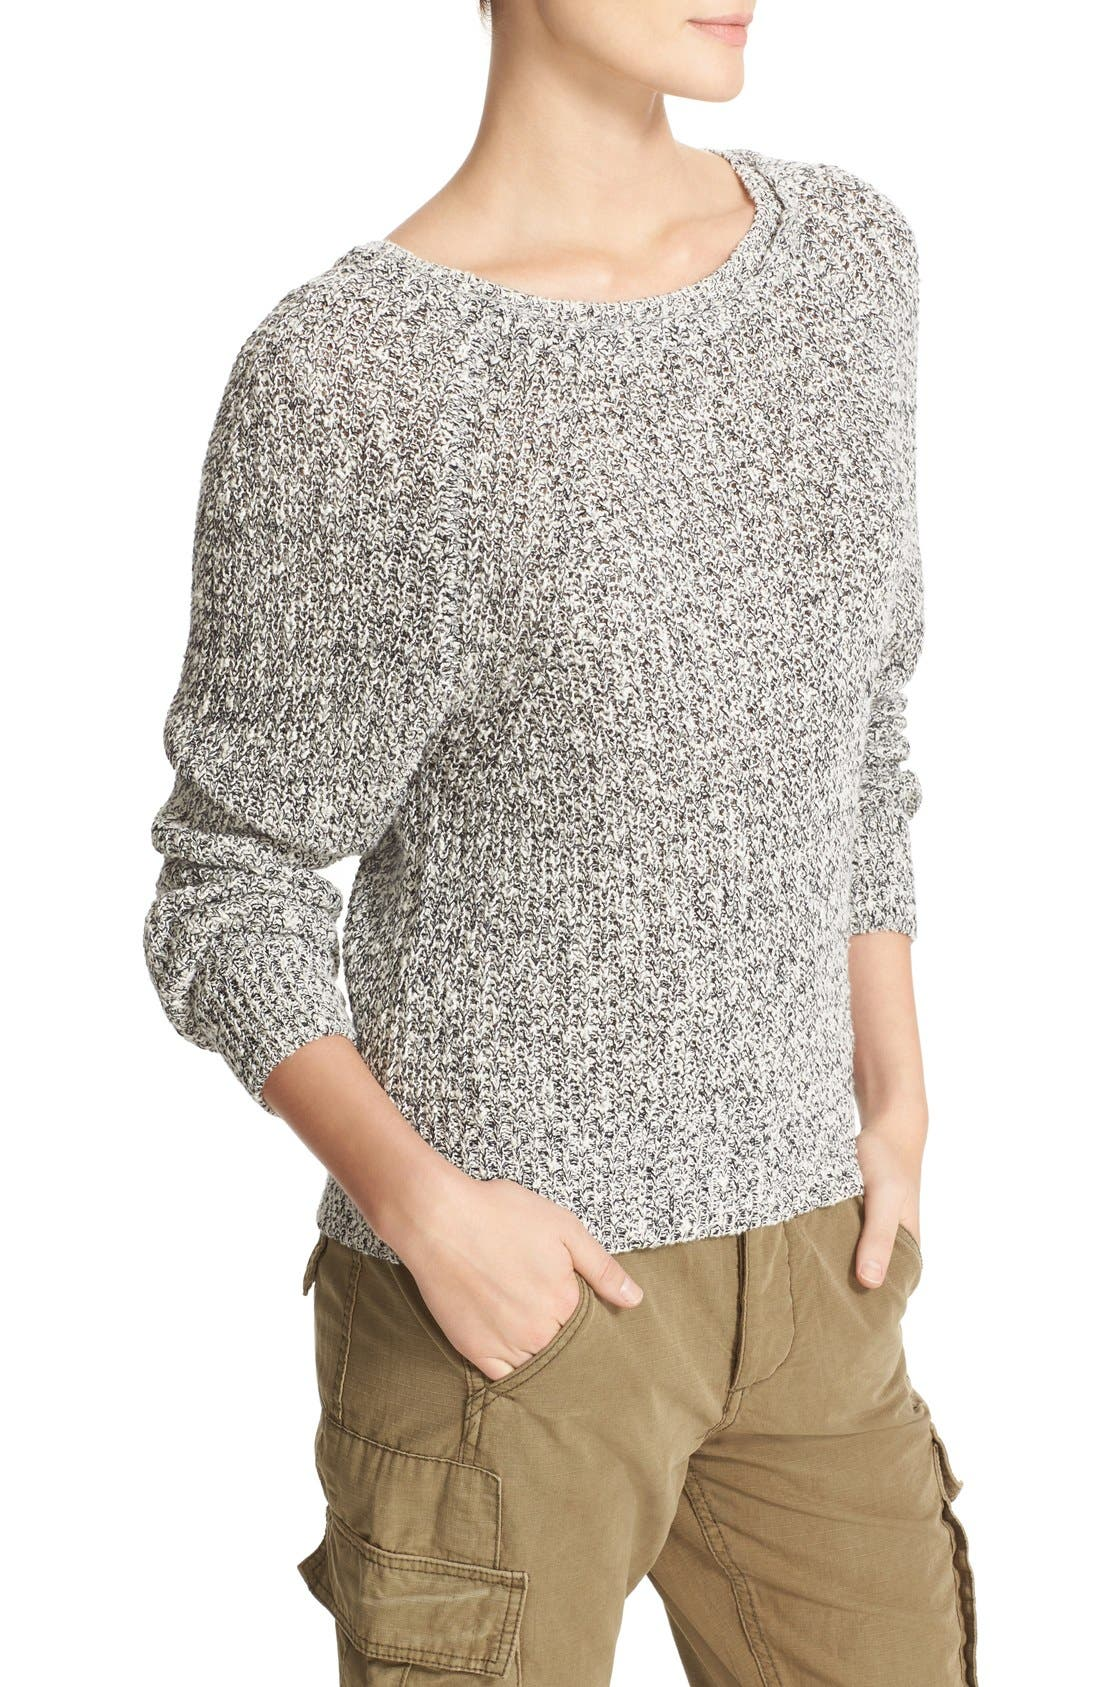 Electric City Pullover Sweater,                             Alternate thumbnail 3, color,                             001